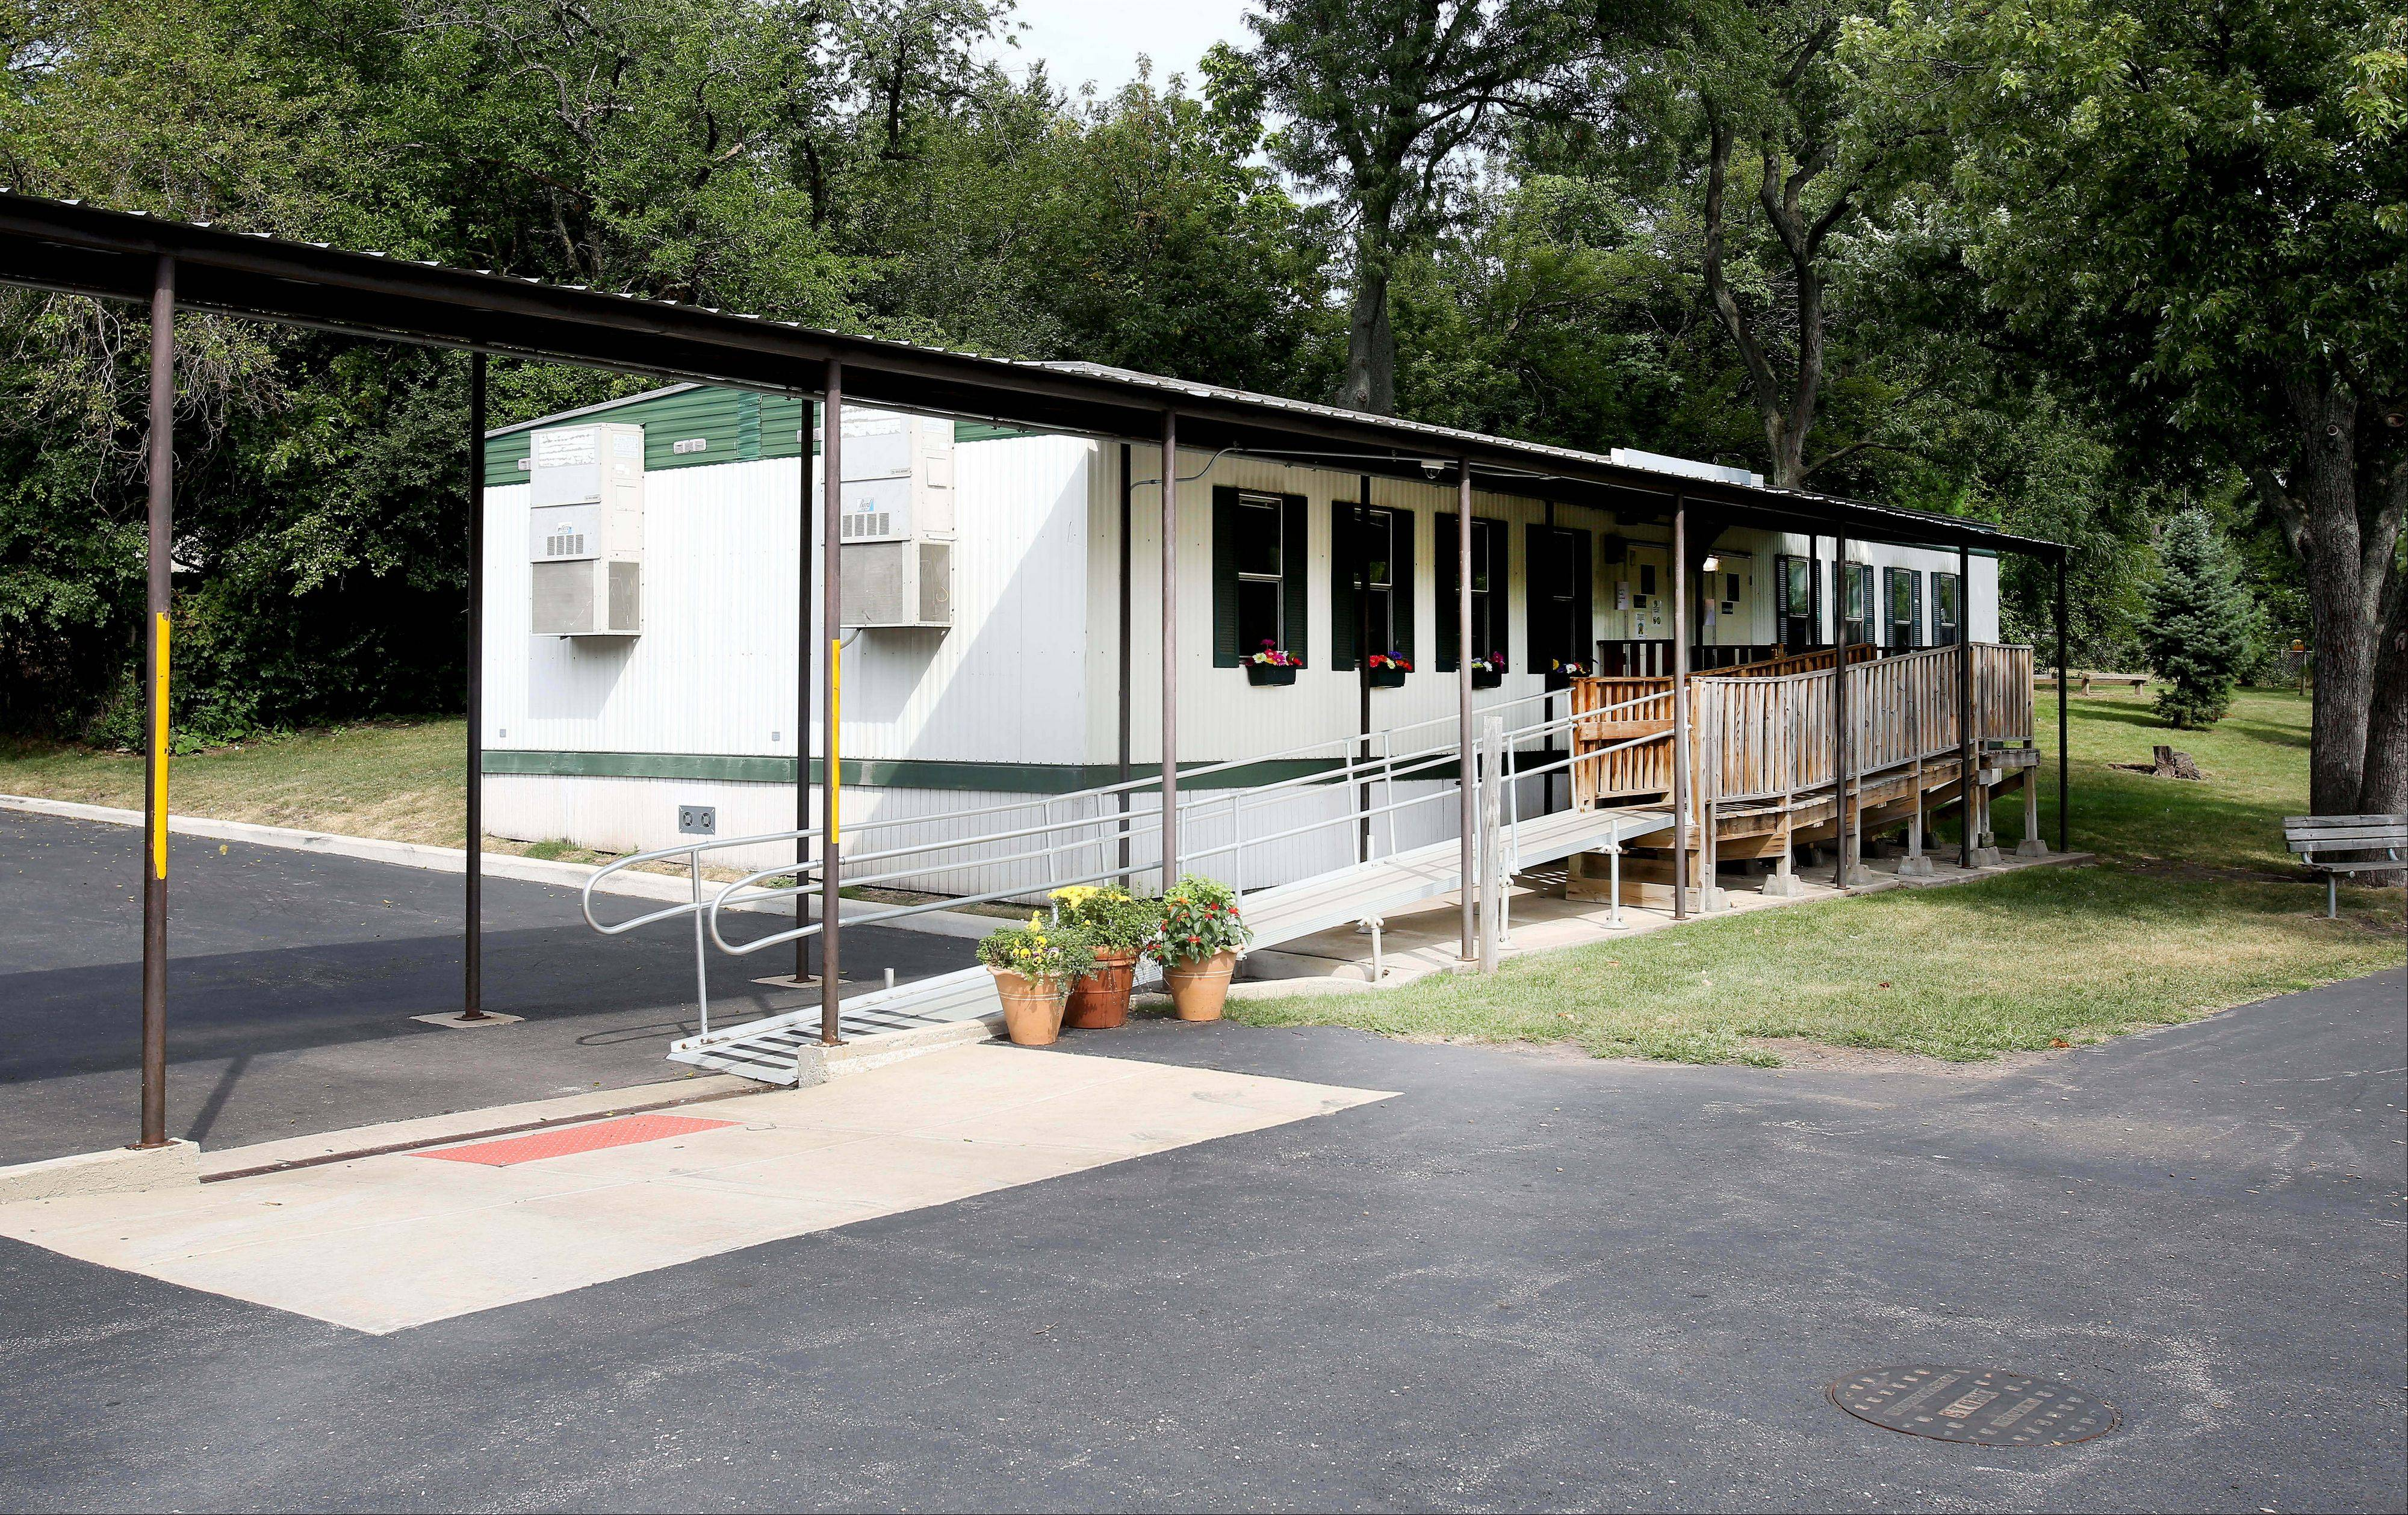 A portable classroom at Abraham Lincoln Elementary School in Glen Ellyn remains closed this week because it was found to be infested with gnats.